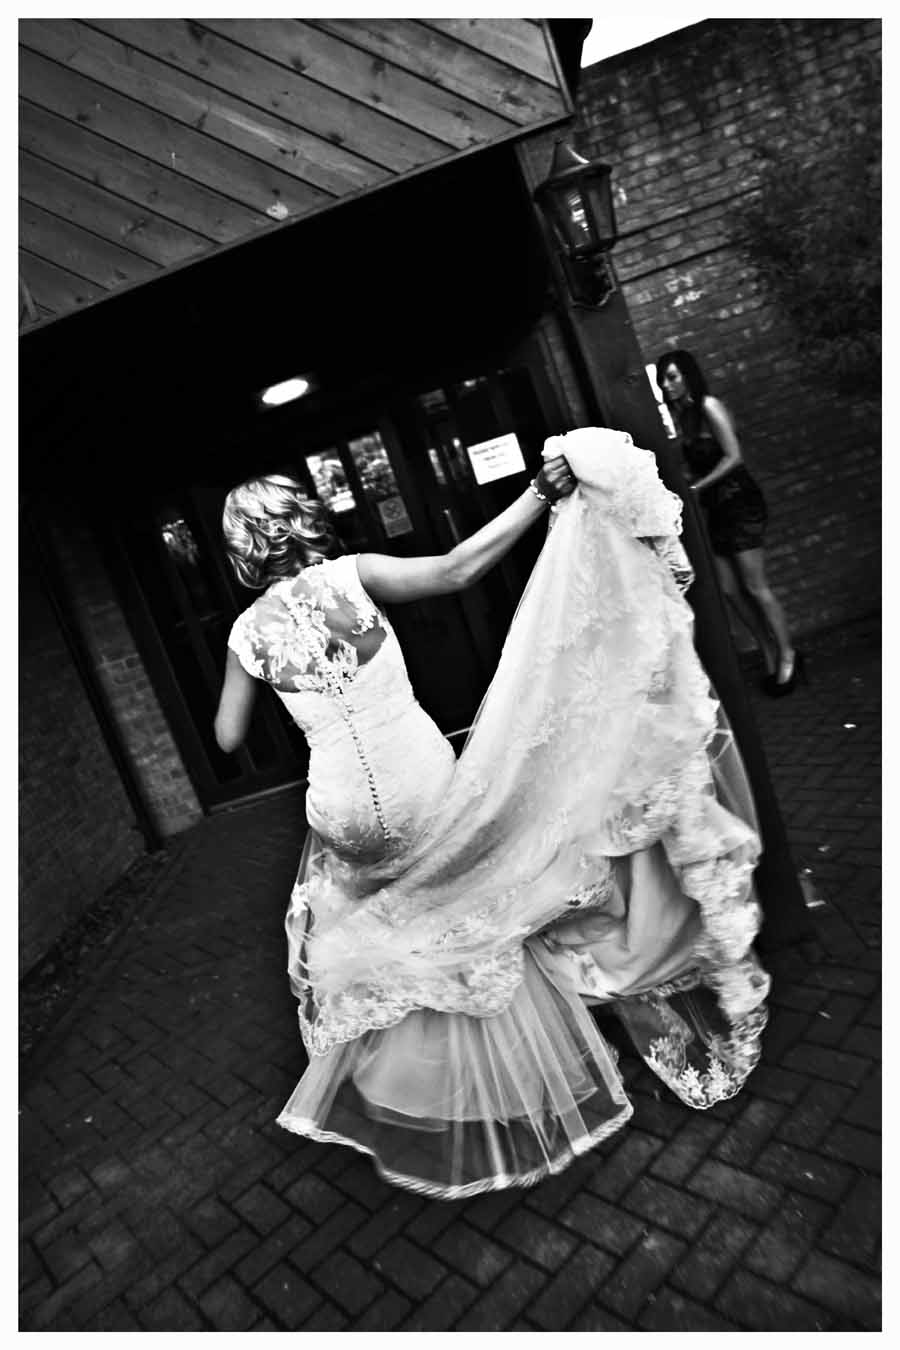 BRIDE Photos by Simeon Thaw copyright 2014 (97).jpg